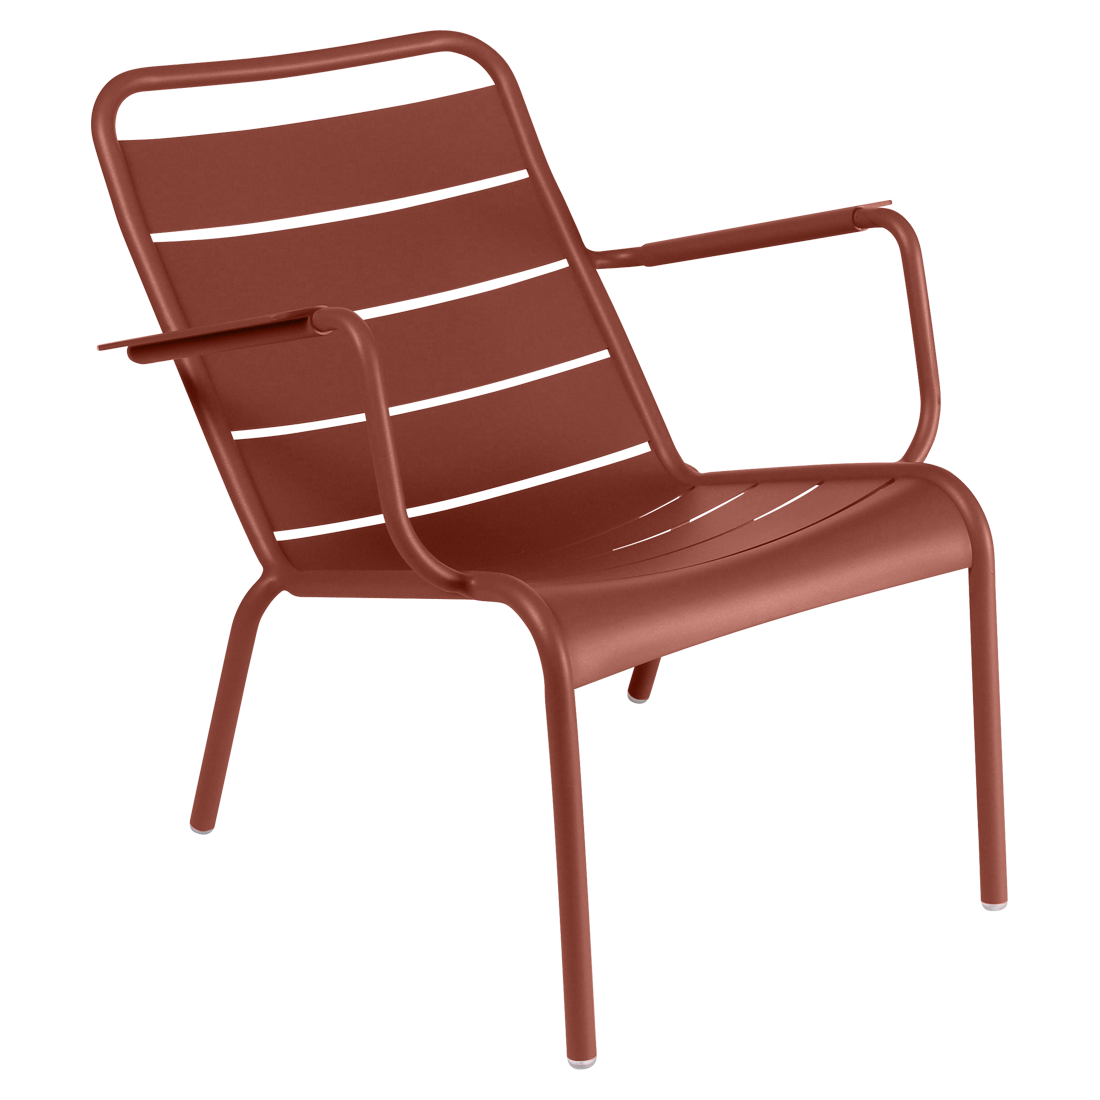 Fauteuil bas luxembourg ocre rouge